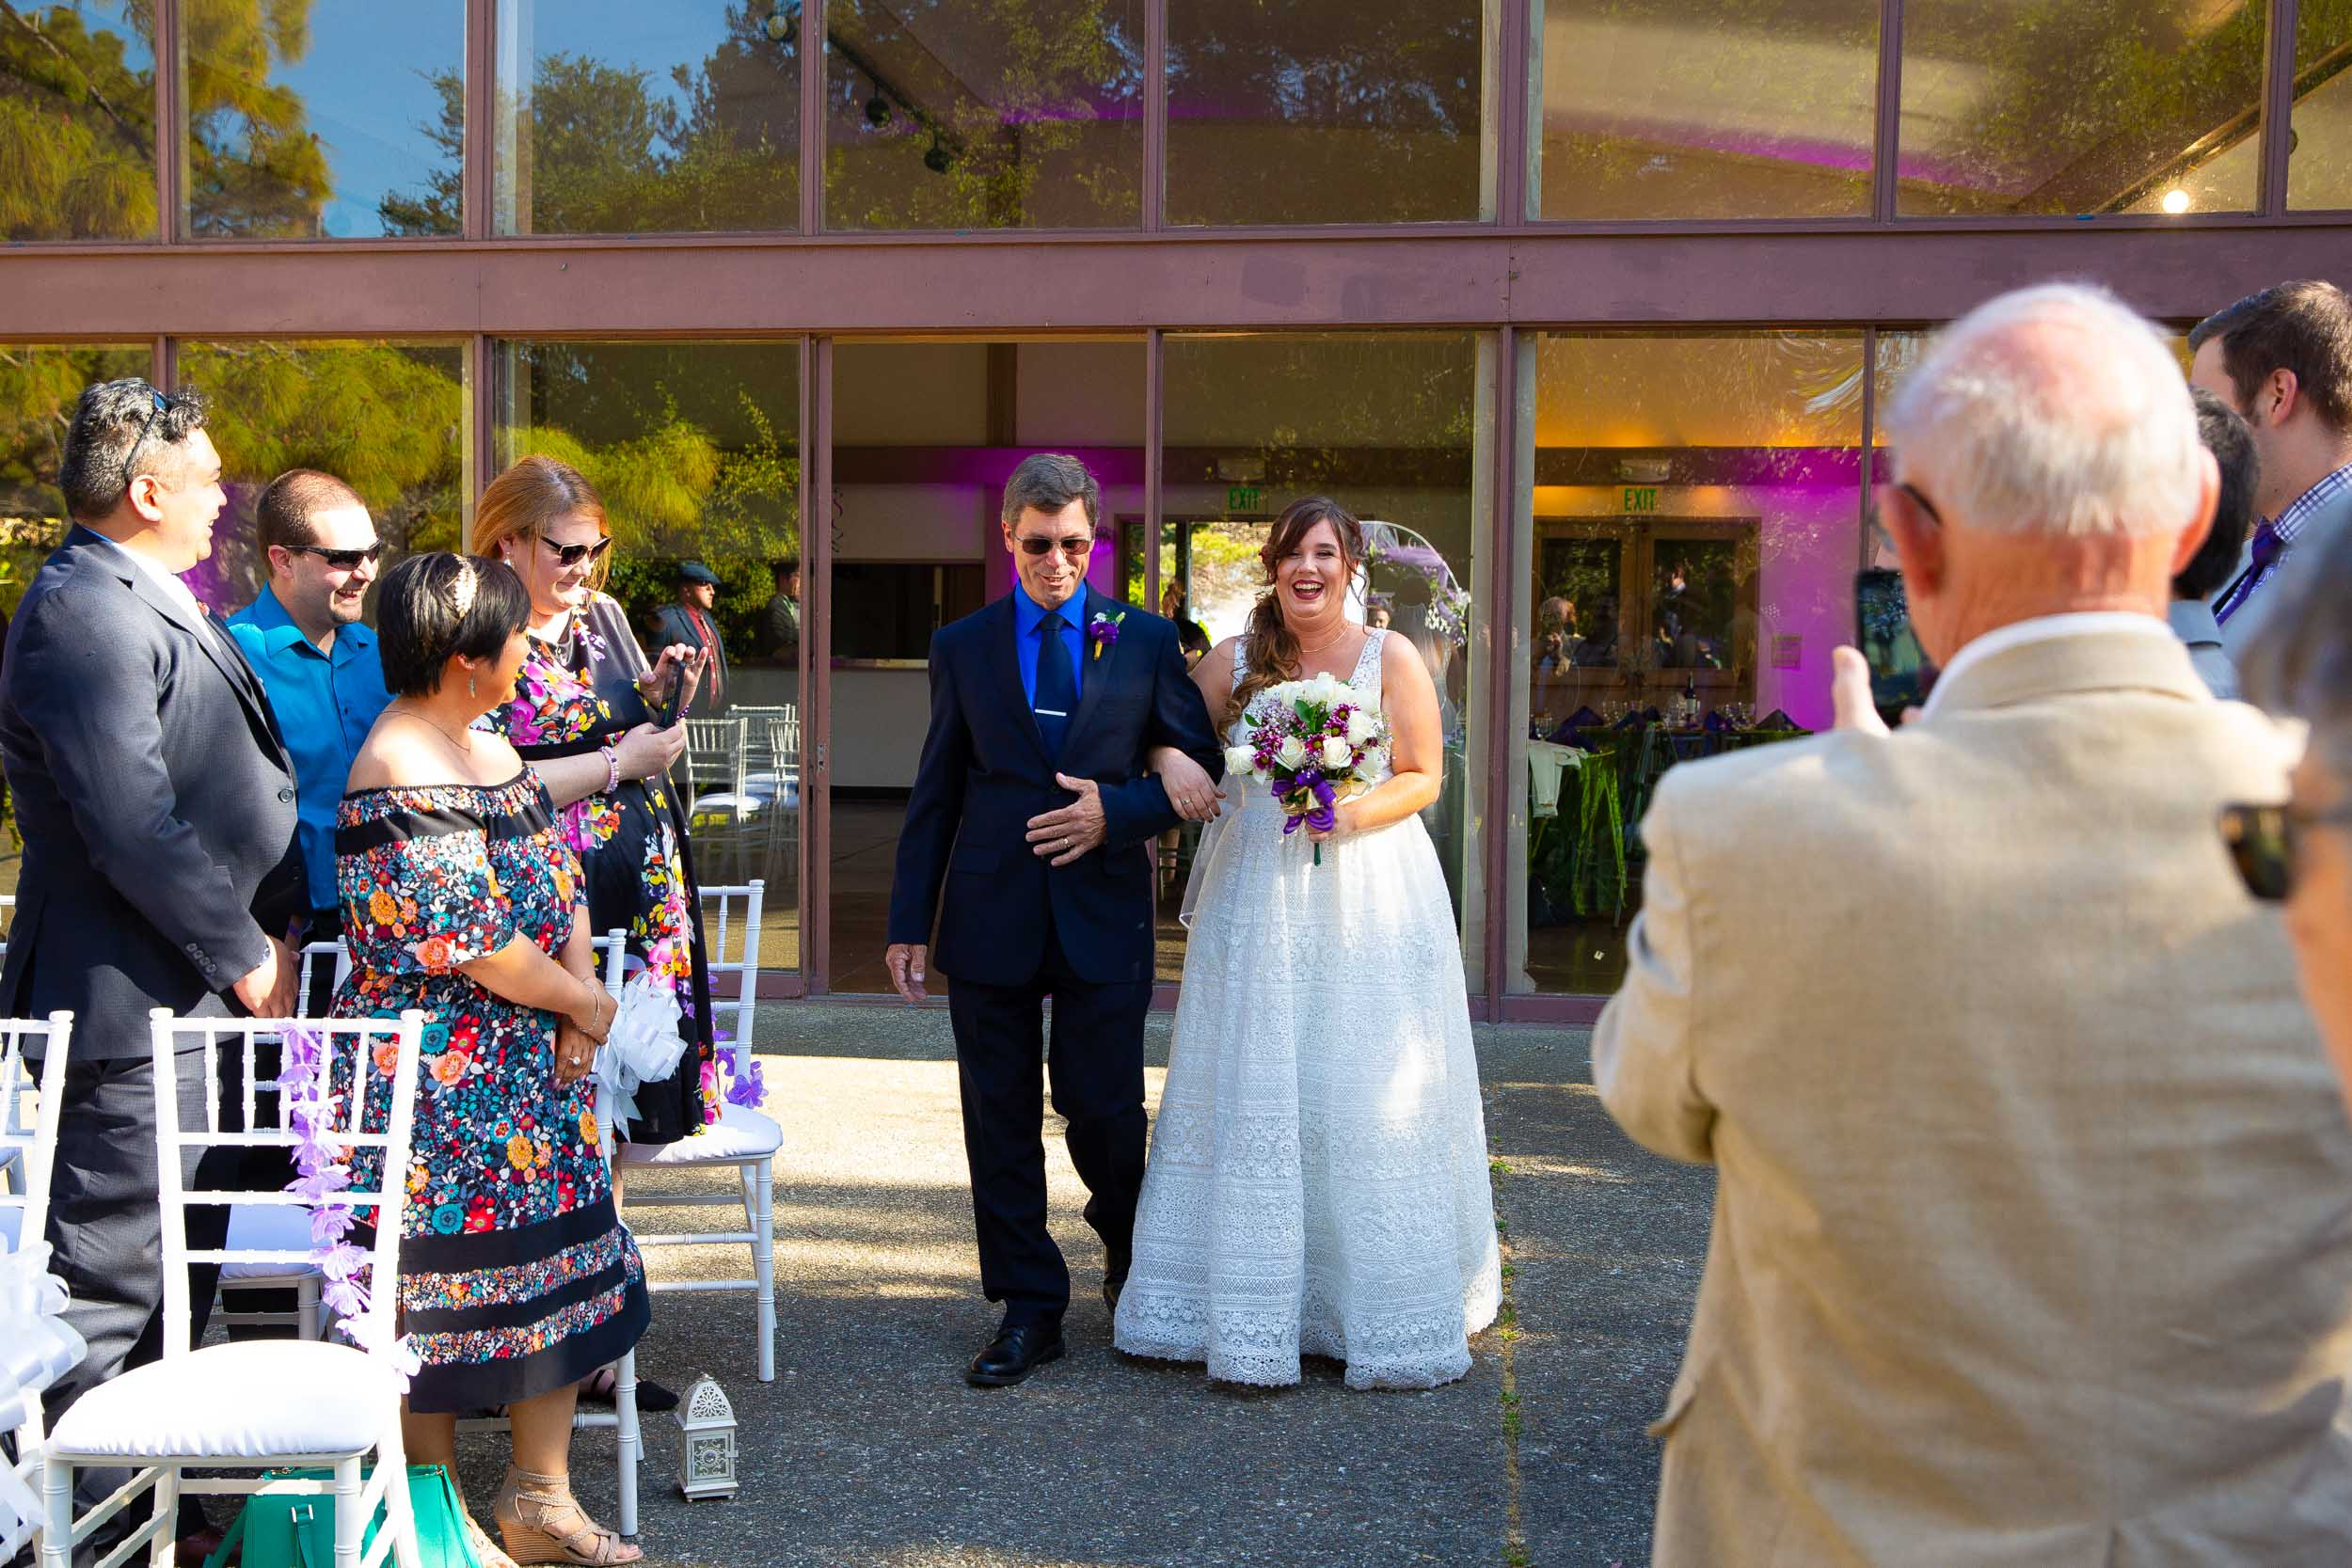 Oakland-Zoo-wedding 29.jpg